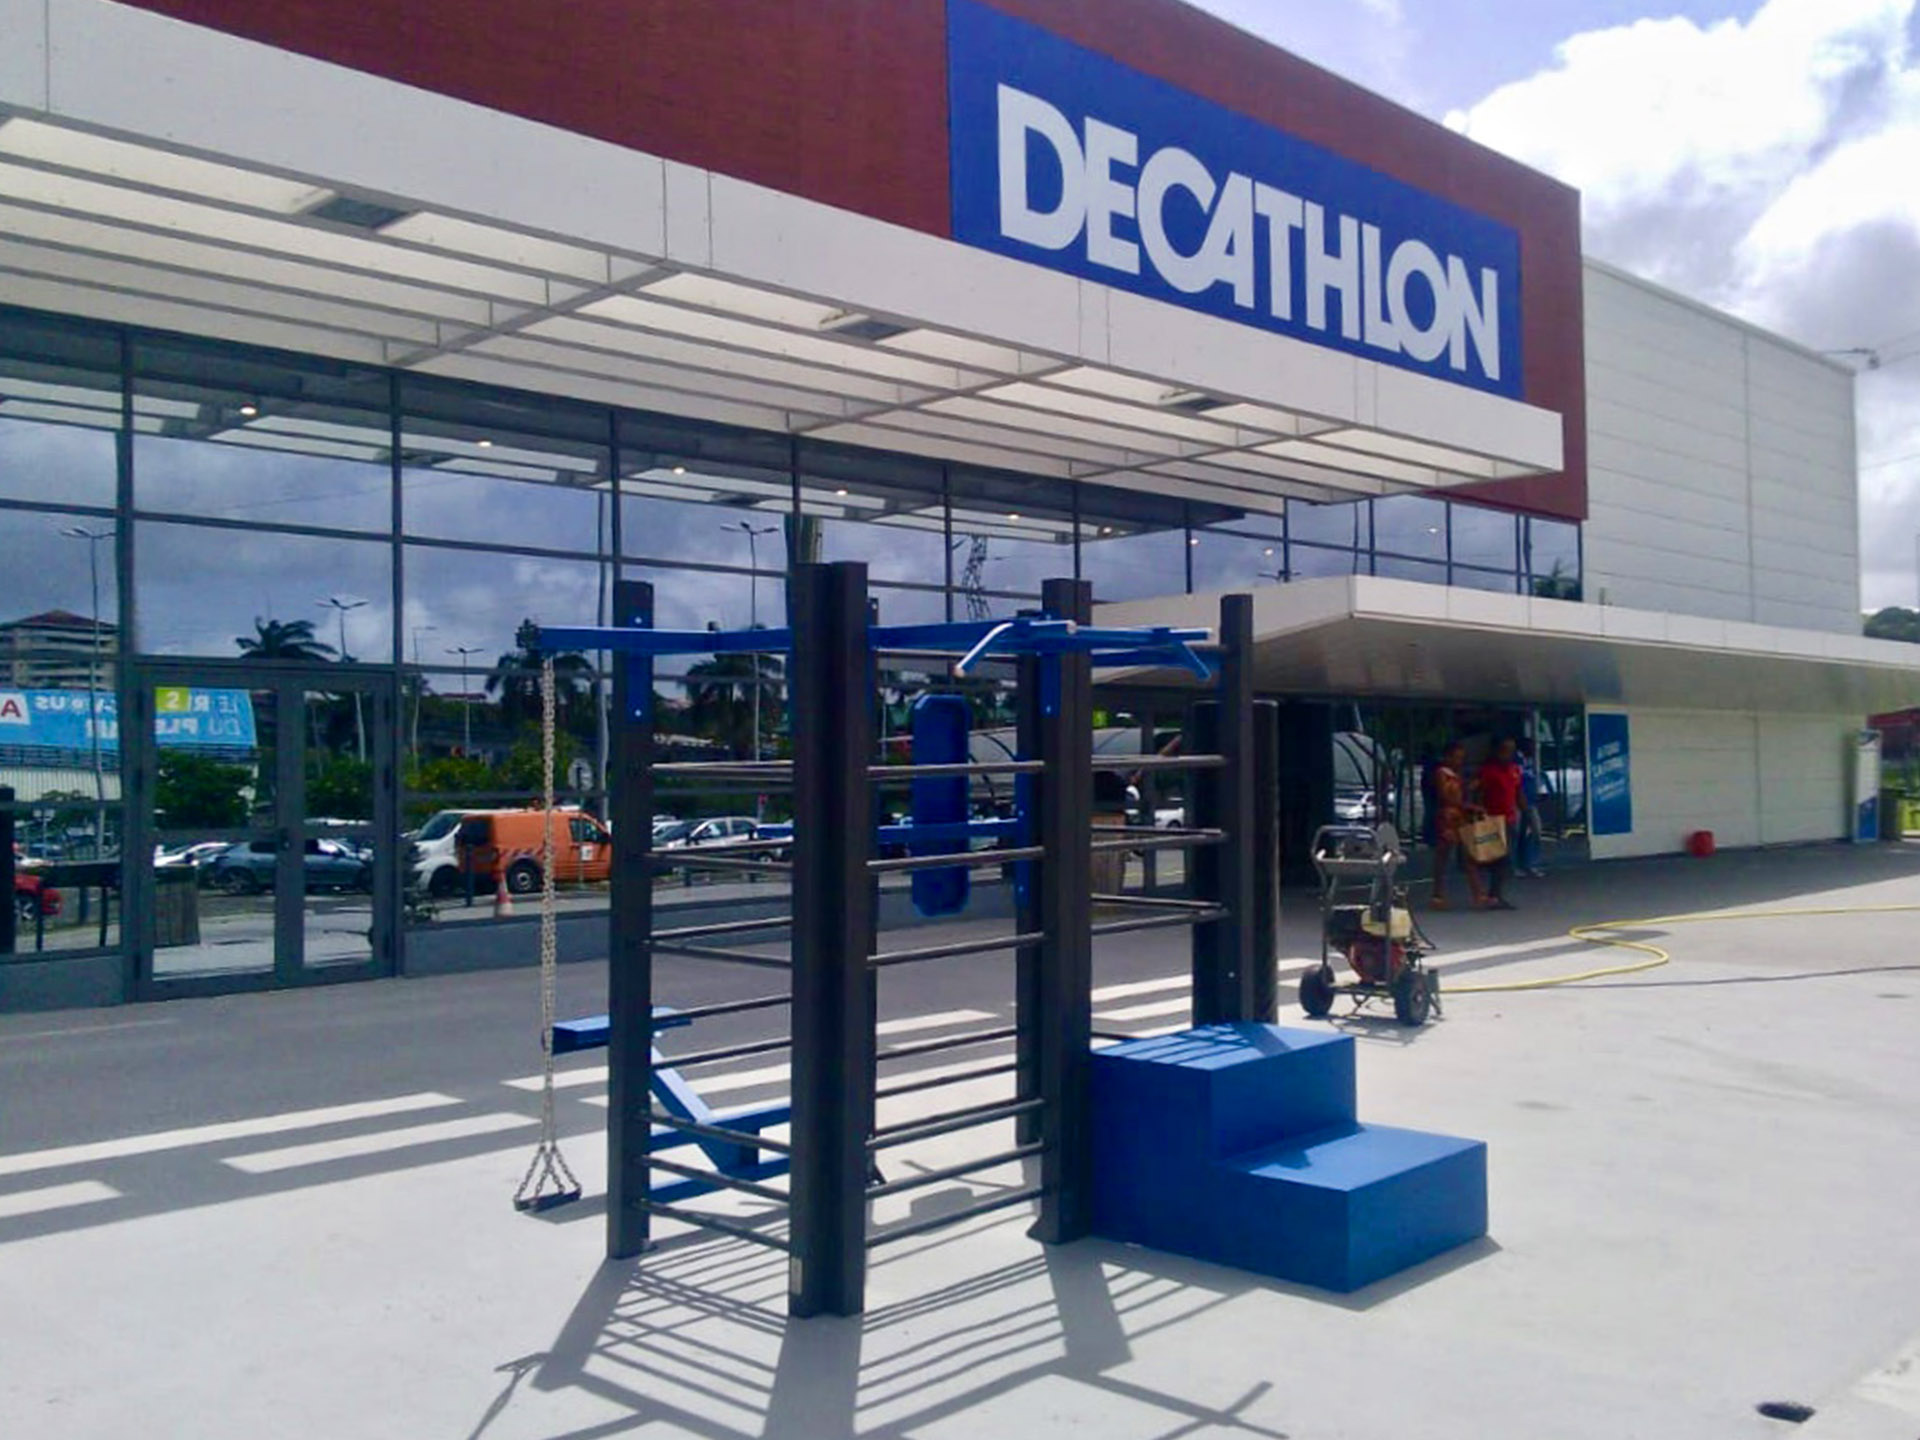 https://www.decathlon.mq/